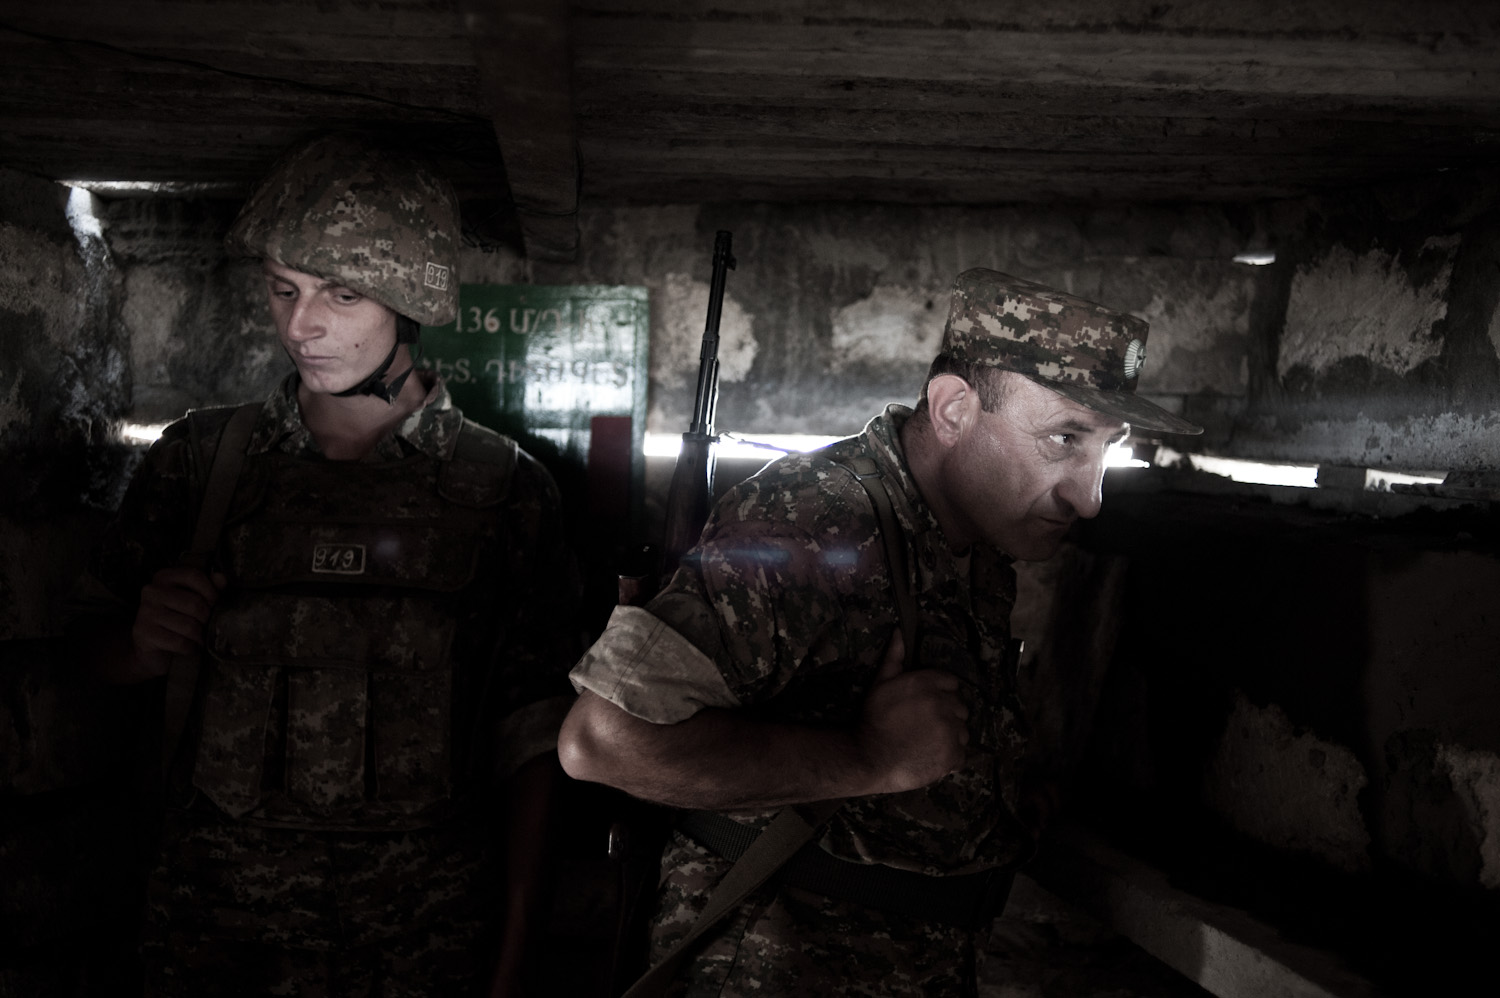 Colonel Alik Sargsyan watches the Azerbaijani frontline located 30 meters from his position at a lookout post, with young conscript Arman in the background.